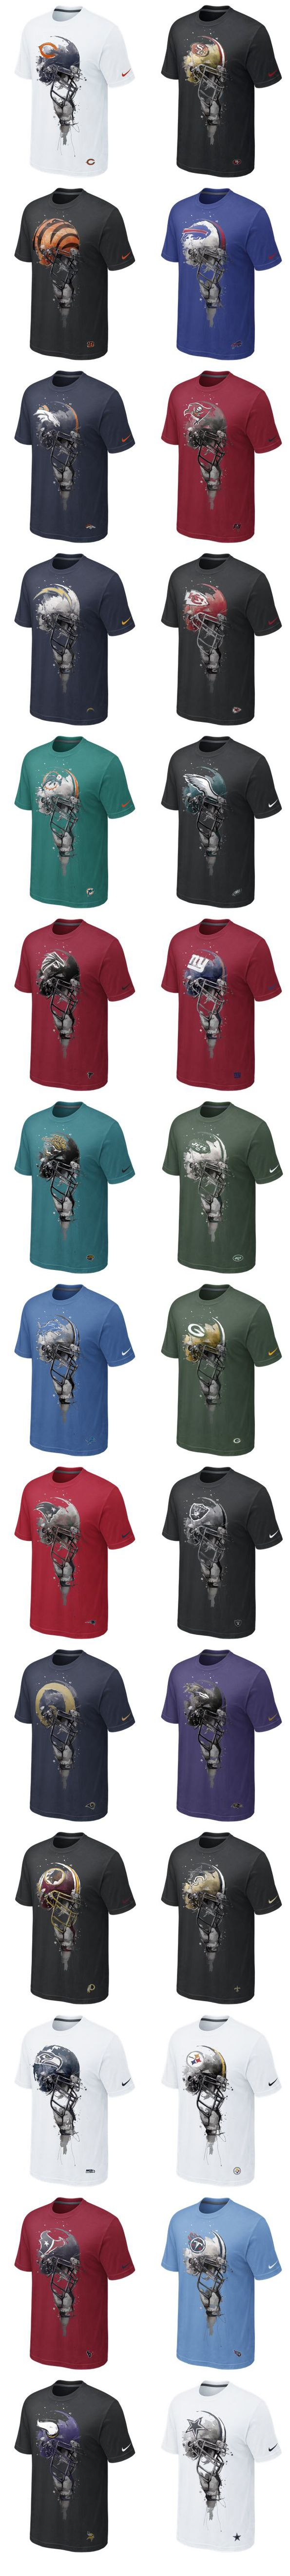 Design t shirt nike - Nike Projects By Florian Nicolle Via Behance